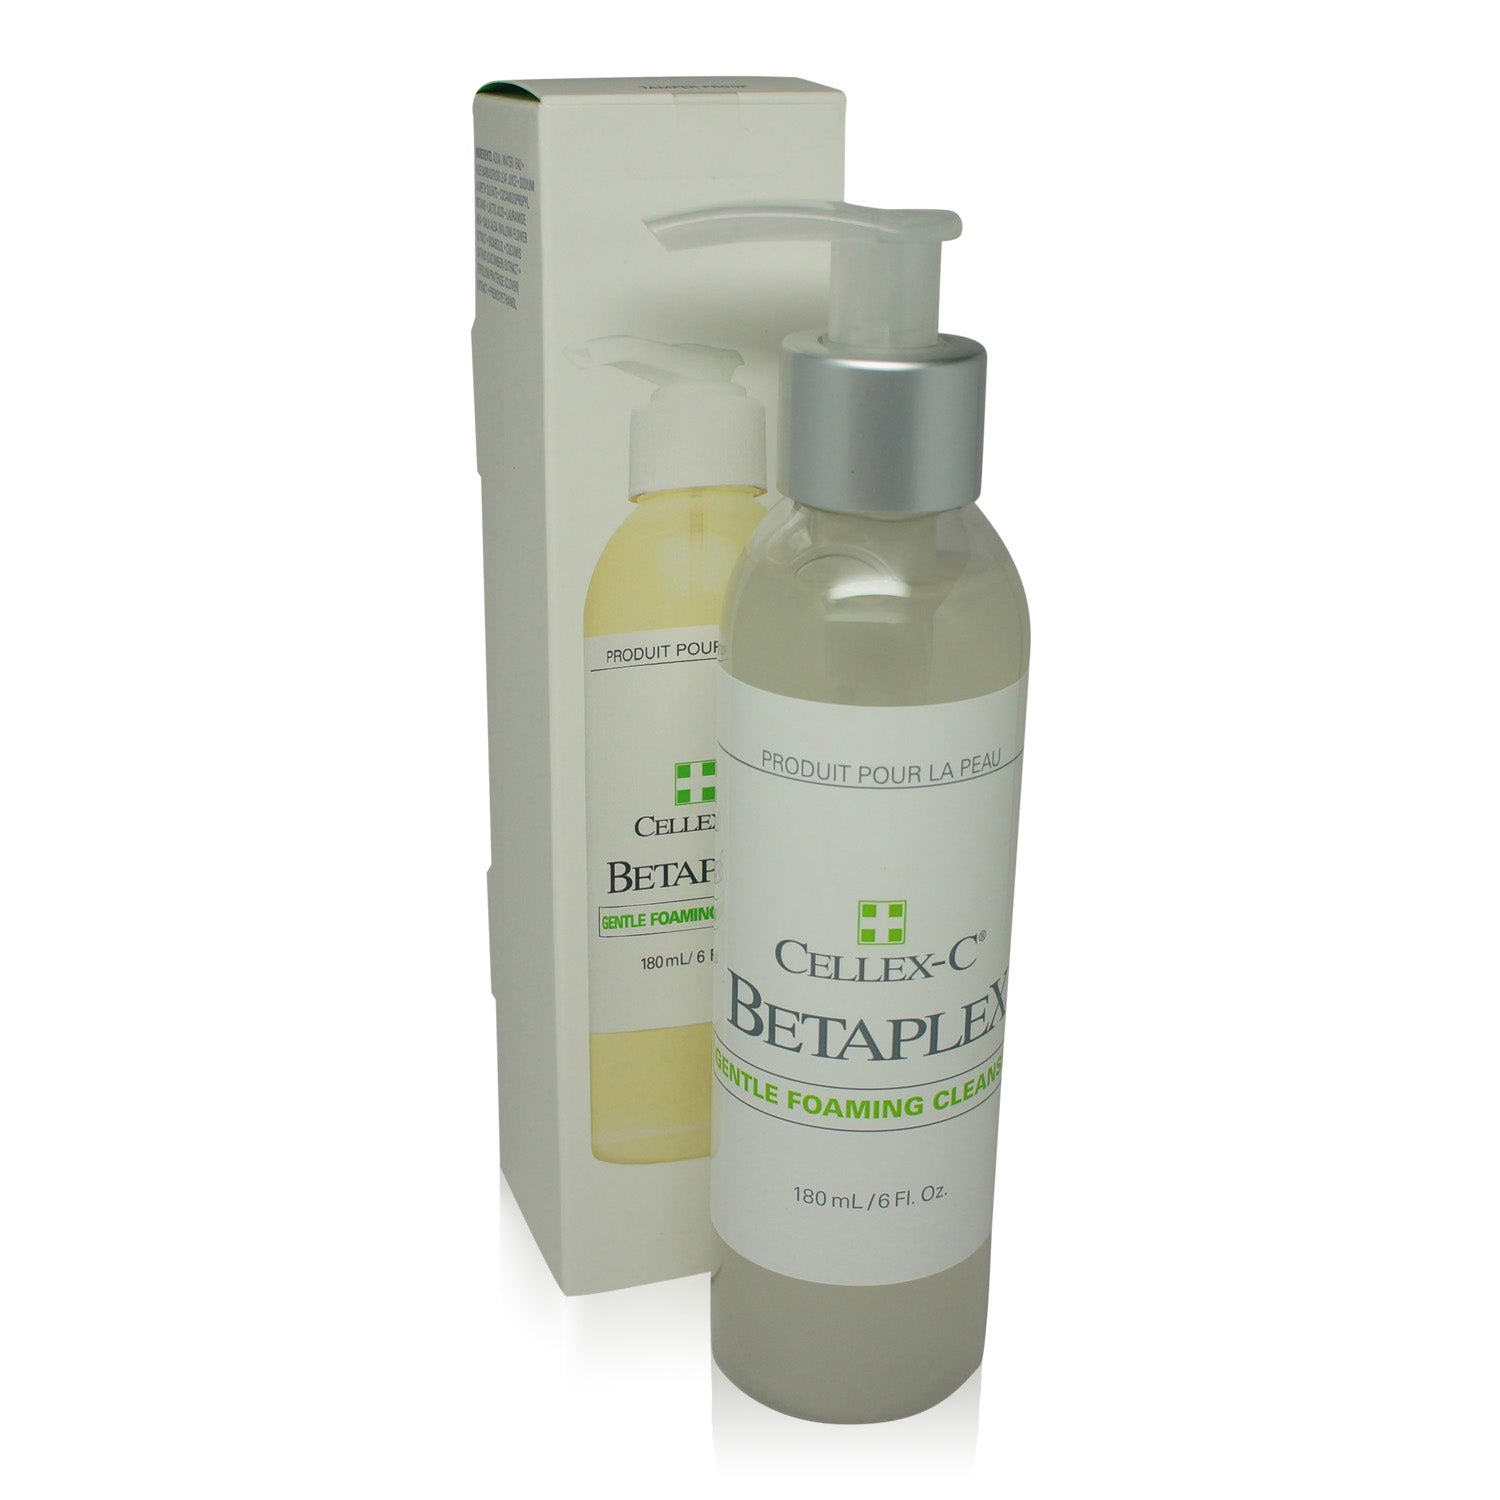 CELLEXC ~ BETAPLEX GENTLE FOAMING CLEANSER ~ 6 fl oz